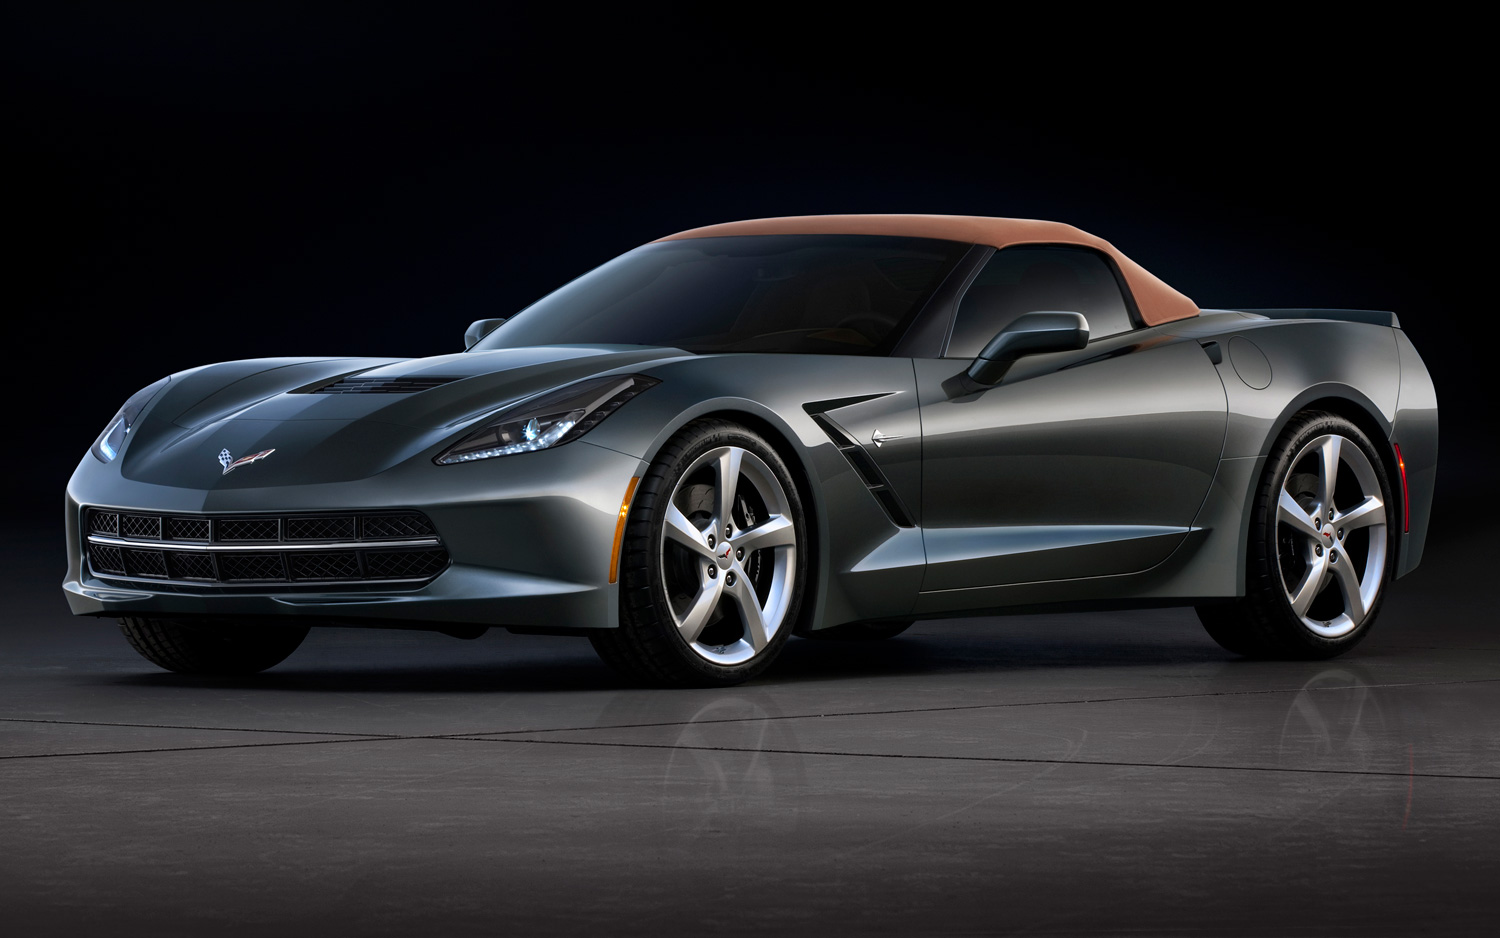 Chevrolet Corvette photo 09